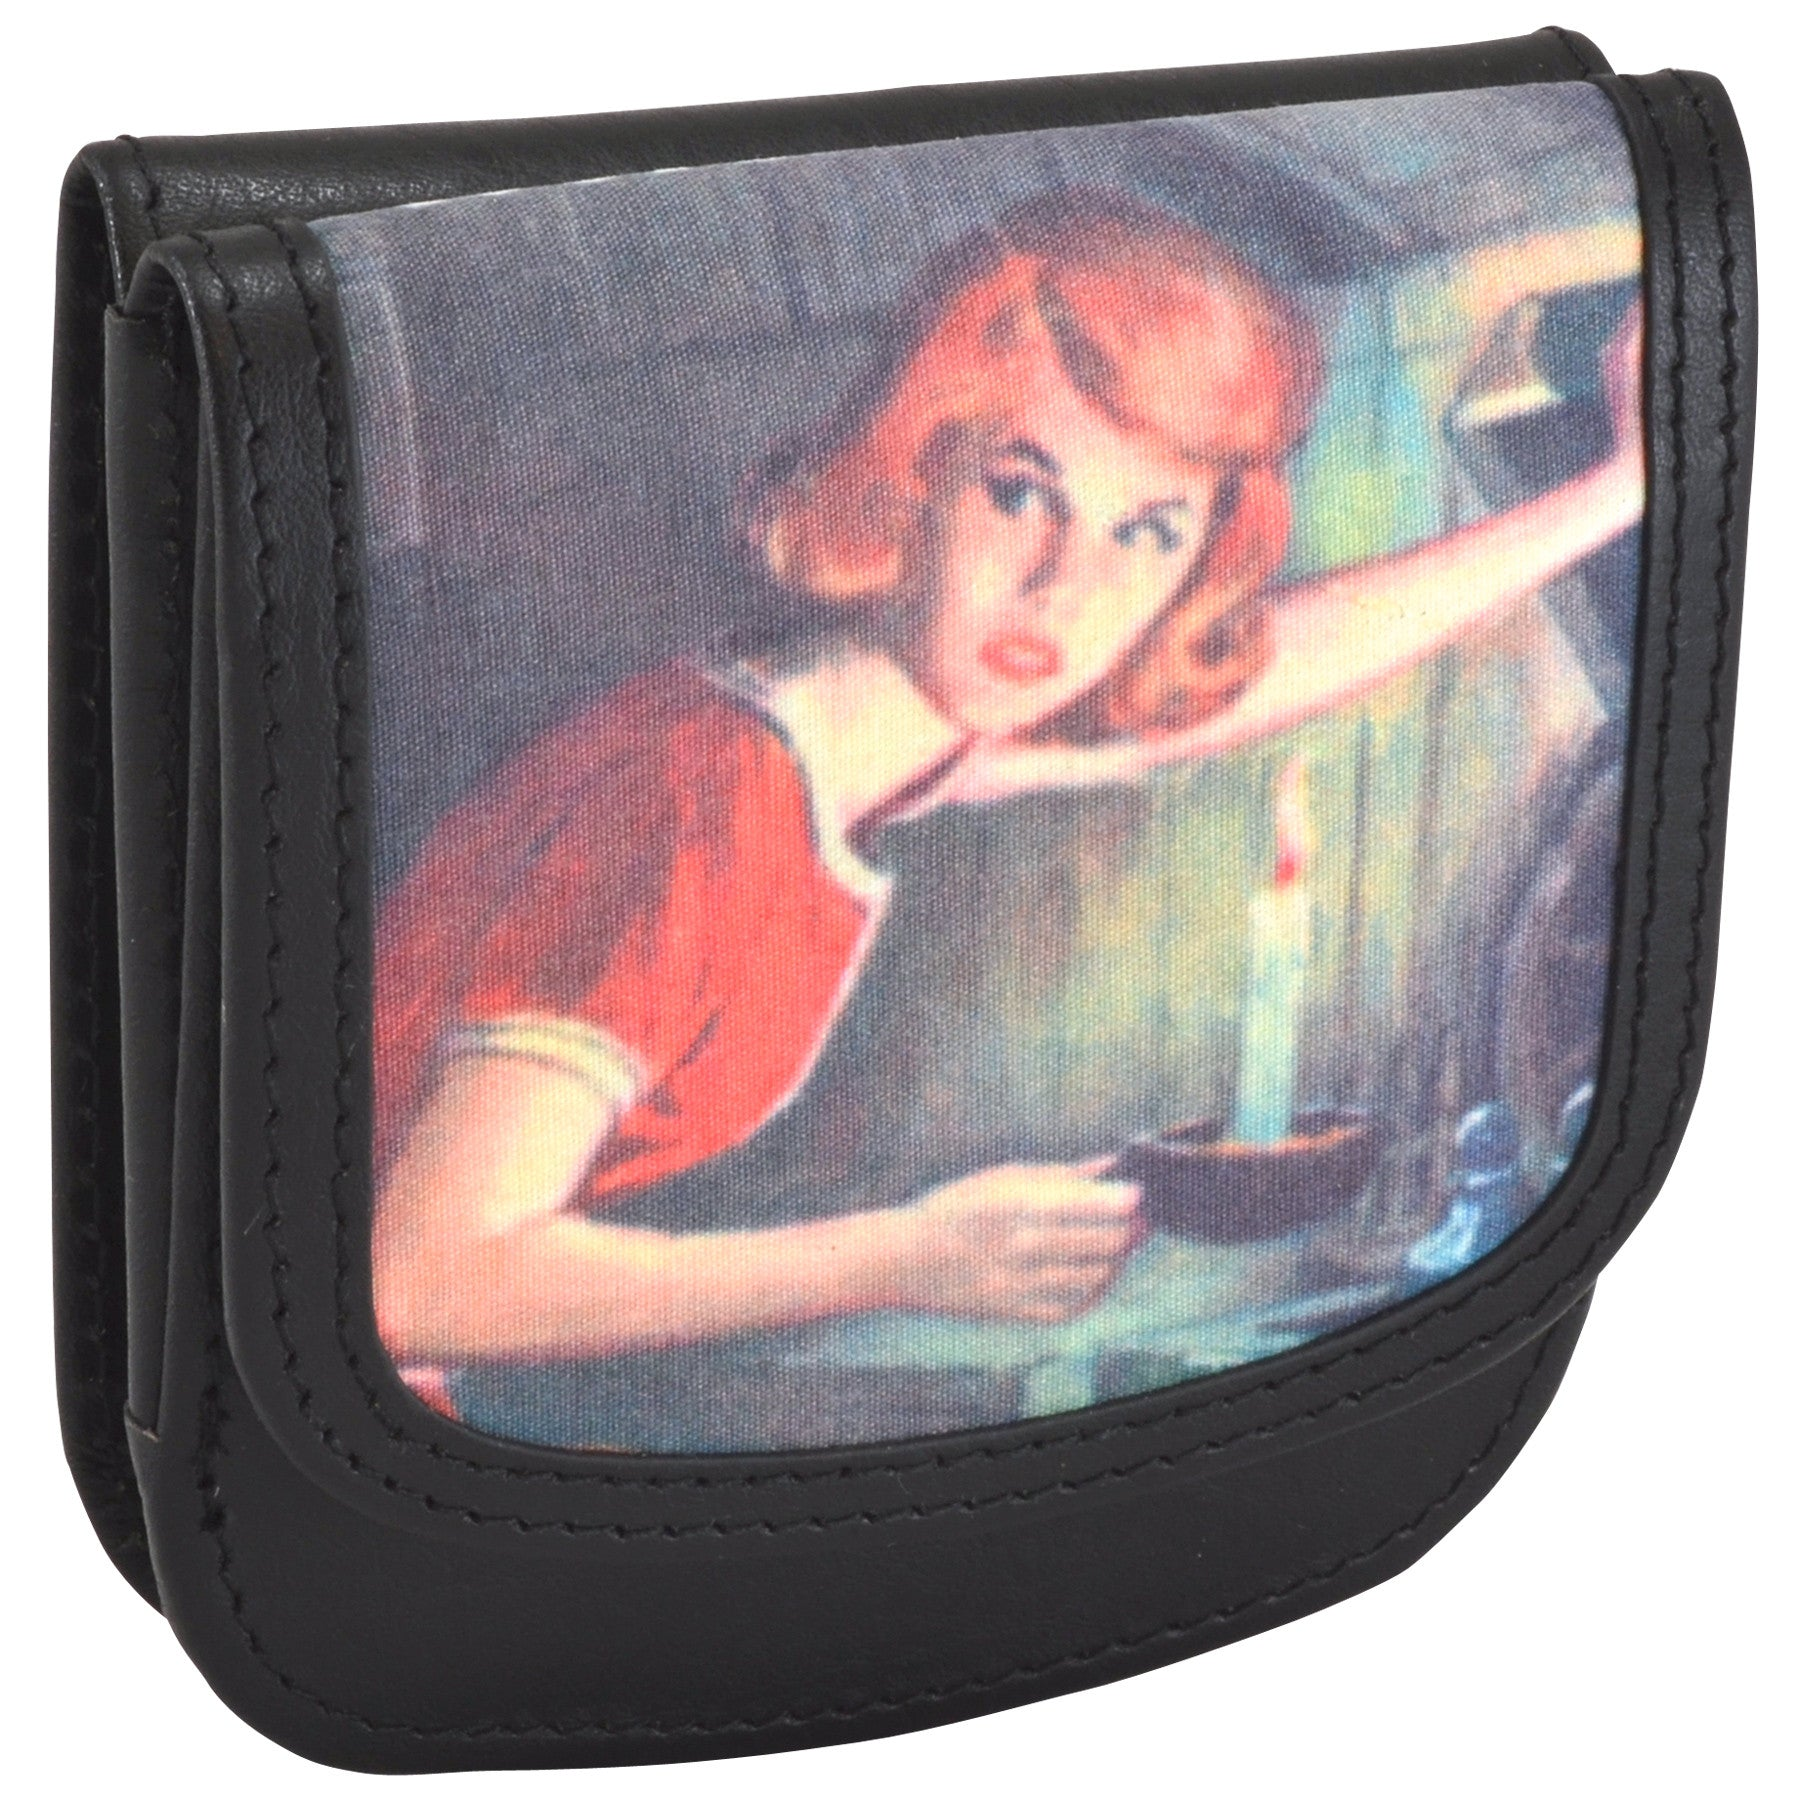 OWL Recycled Nancy Drew Black Taxi Wallet